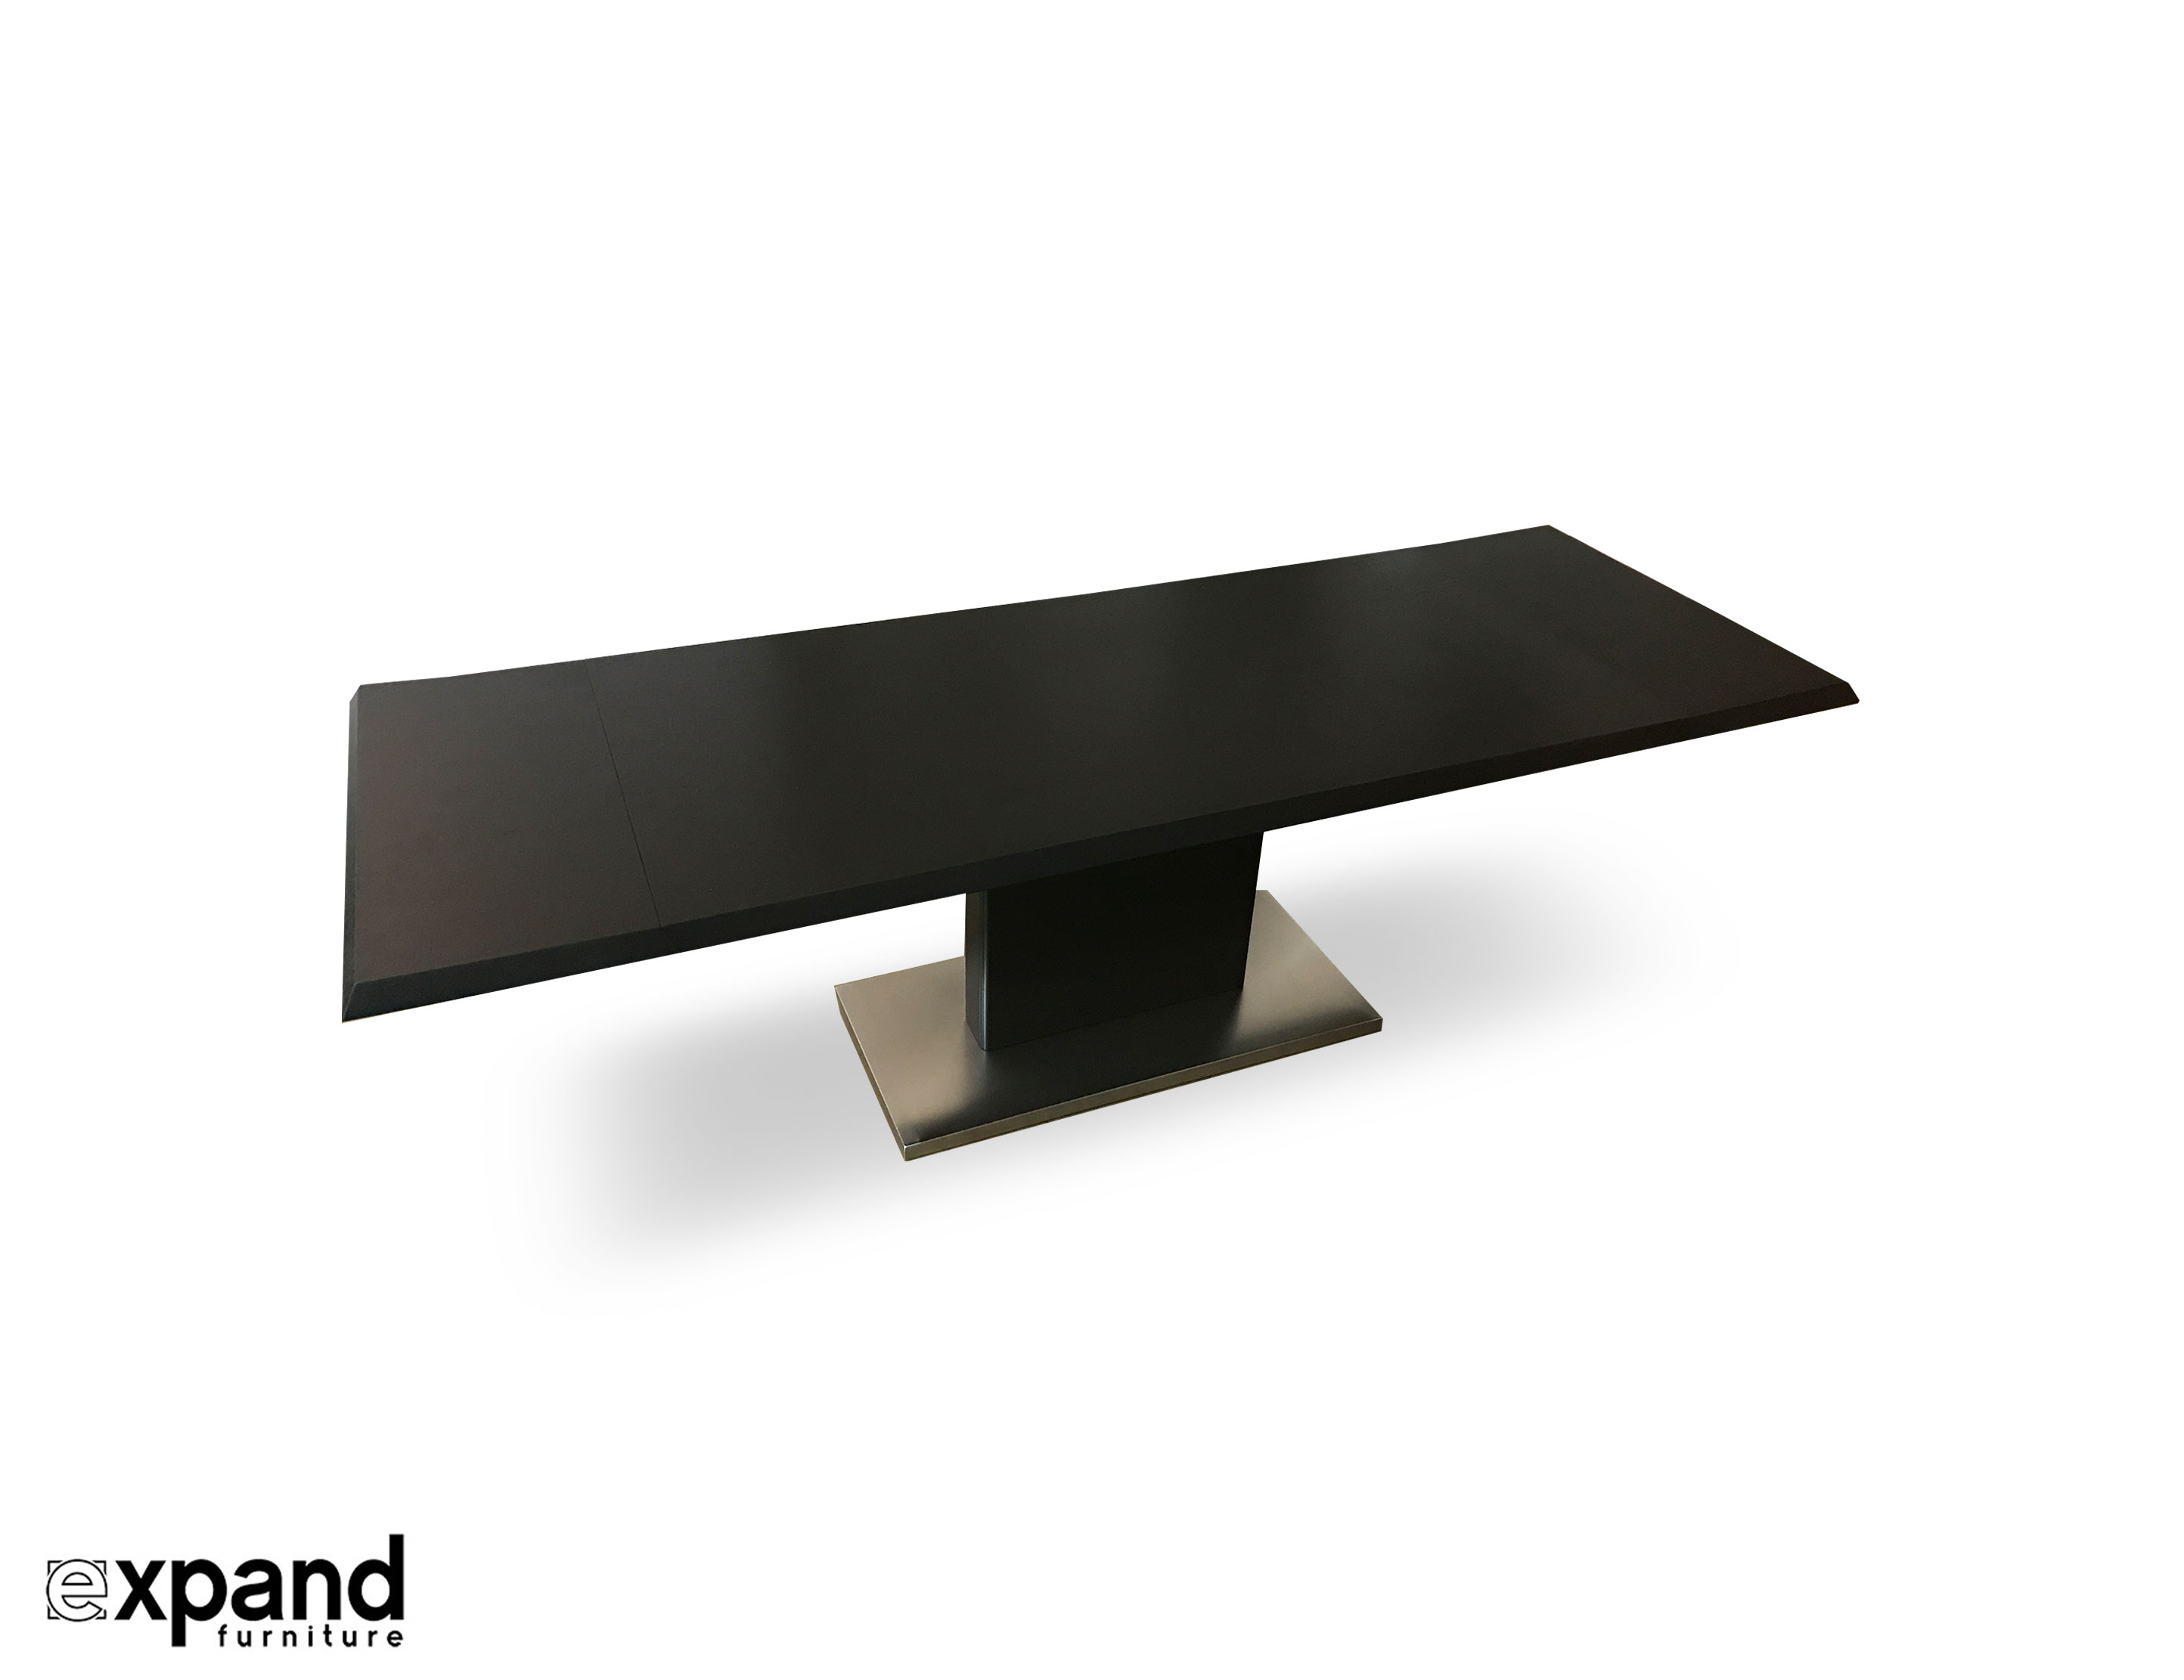 Monolith Extending Wood Dining Table Expand Furniture Folding - Expanding conference table